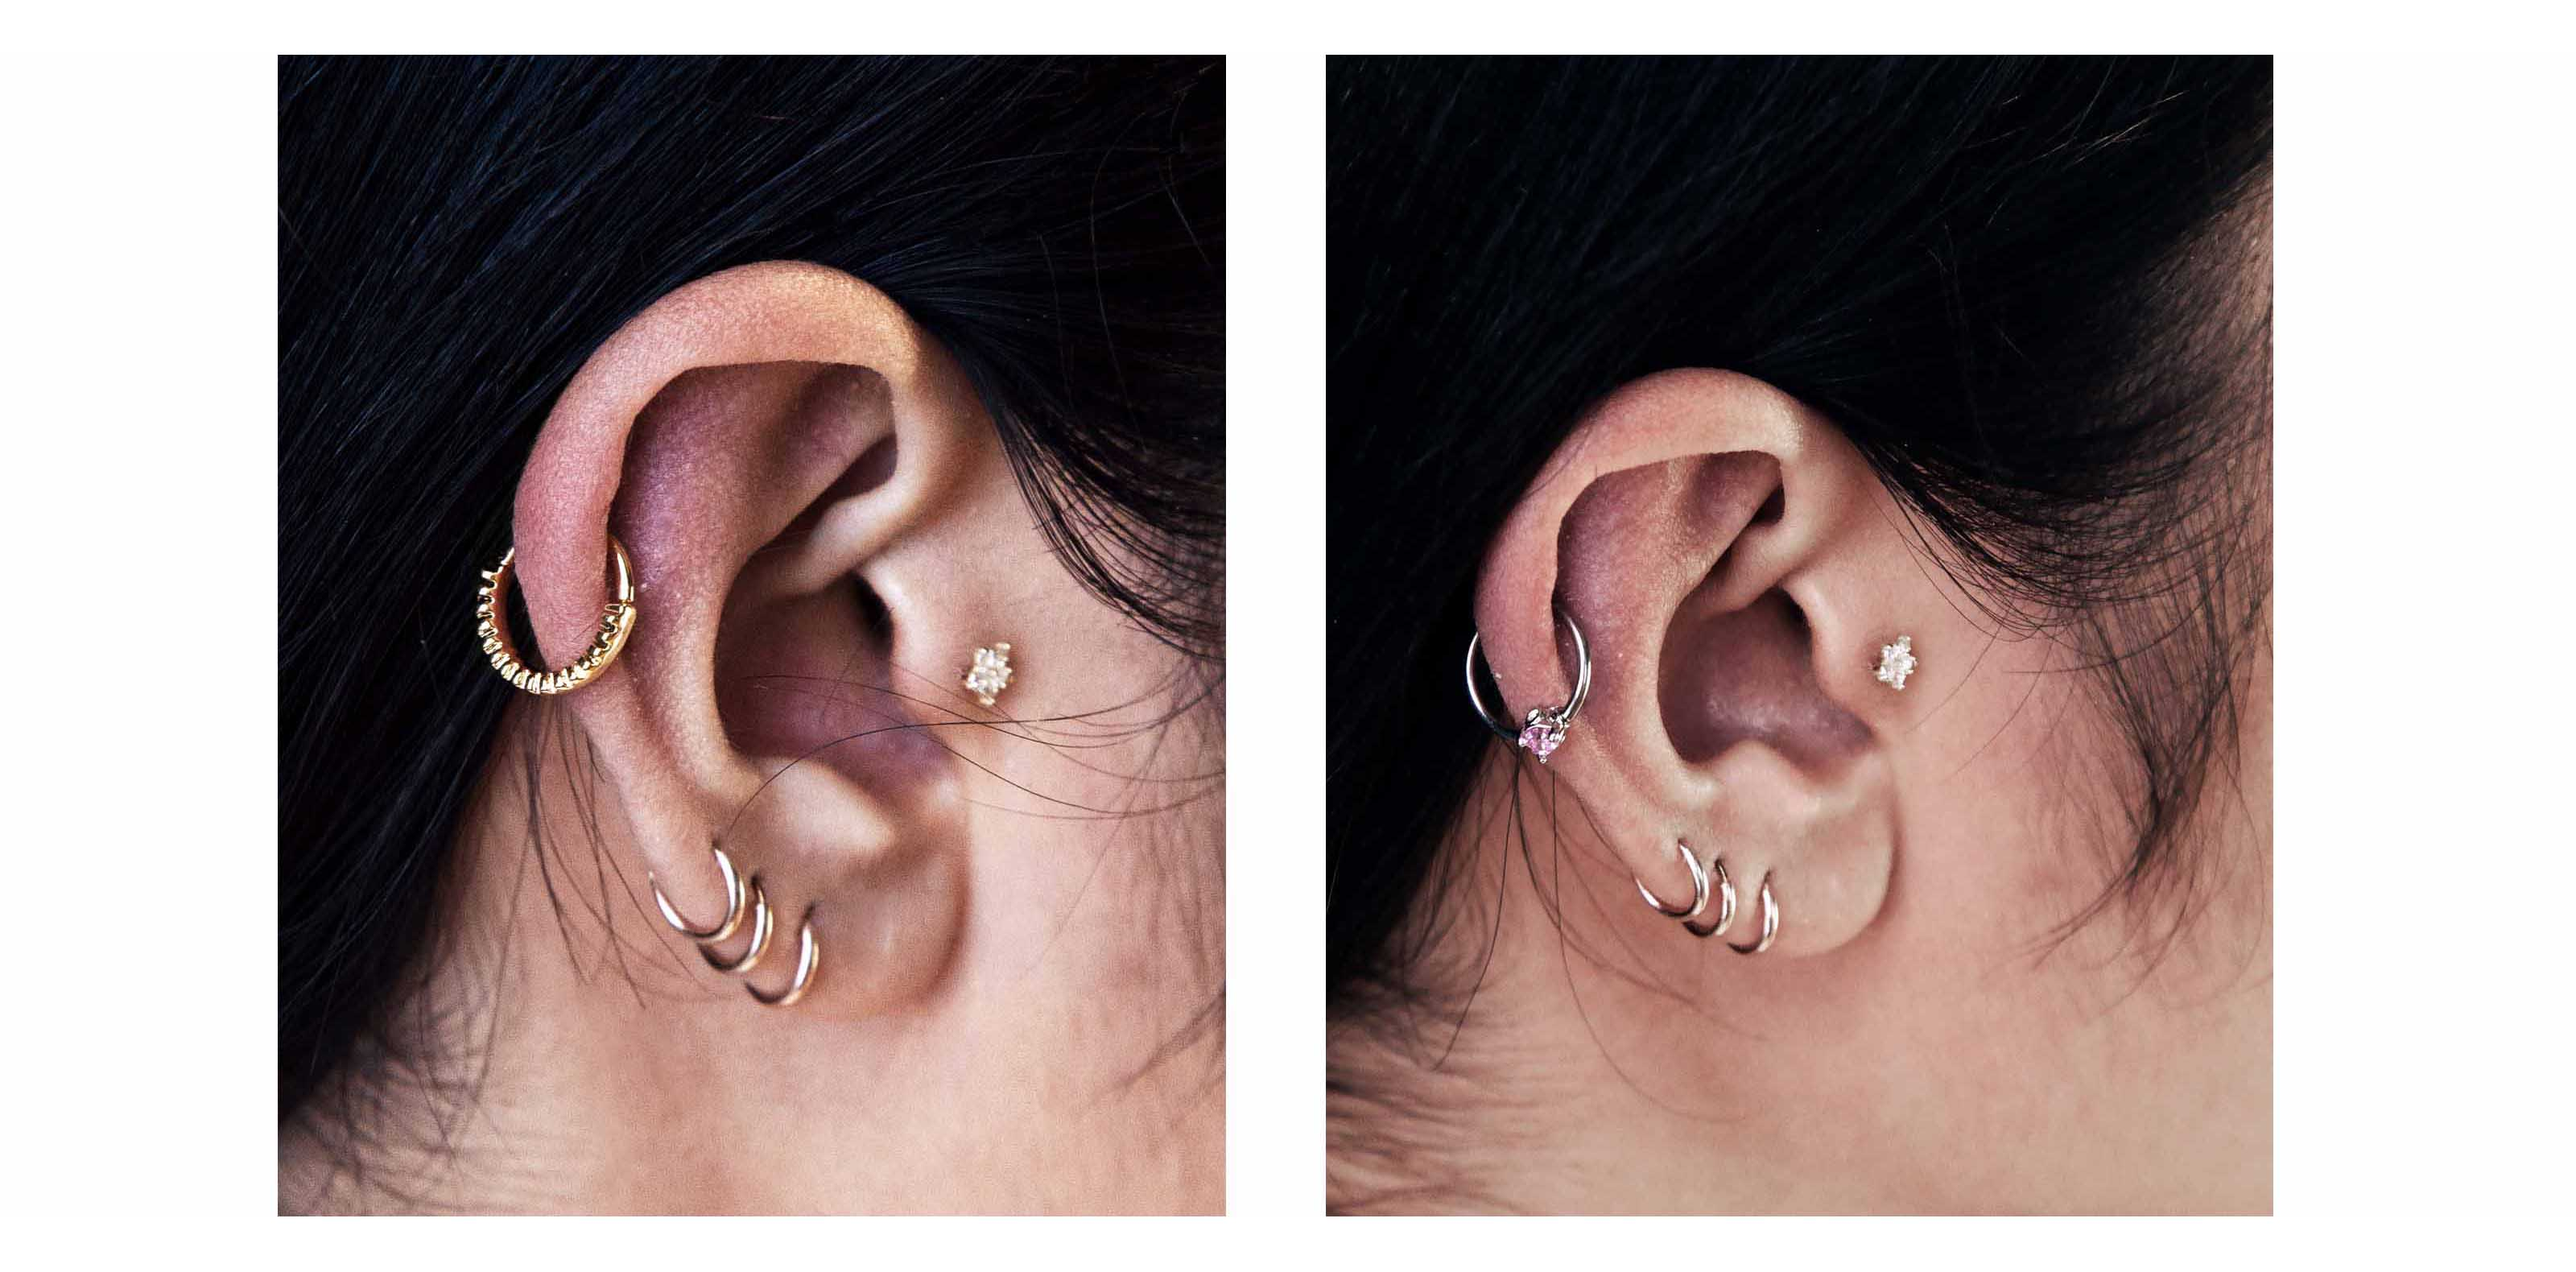 small resolution of  upper cartilage of the ear for an edgy finish to your ear curation stack multiple hoops and combi it with dangly lobe piercings for a look bad girl